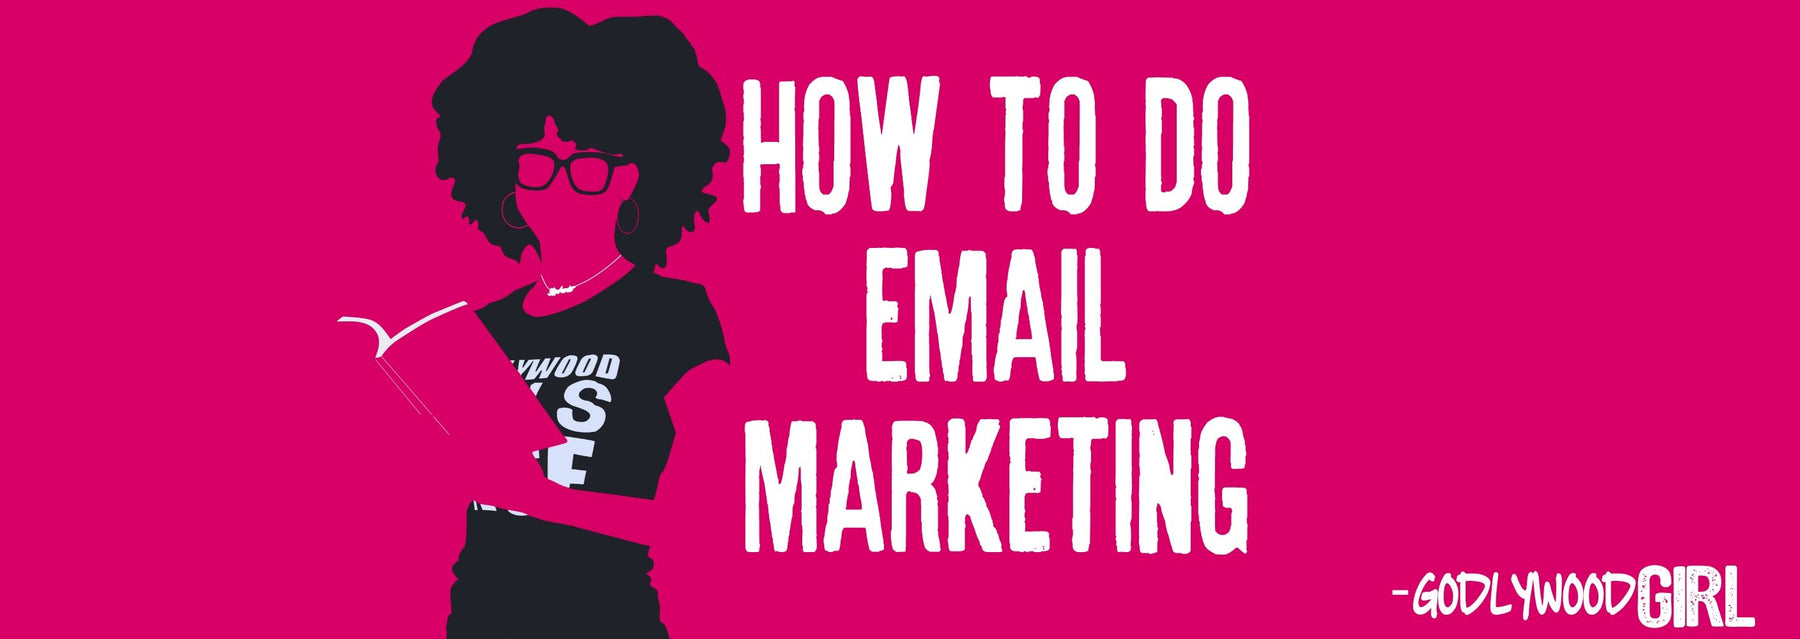 HOW TO DO EMAIL MARKETING | 3 Secret Steps To Start Email Marketing WITHOUT Getting Overwhelmed